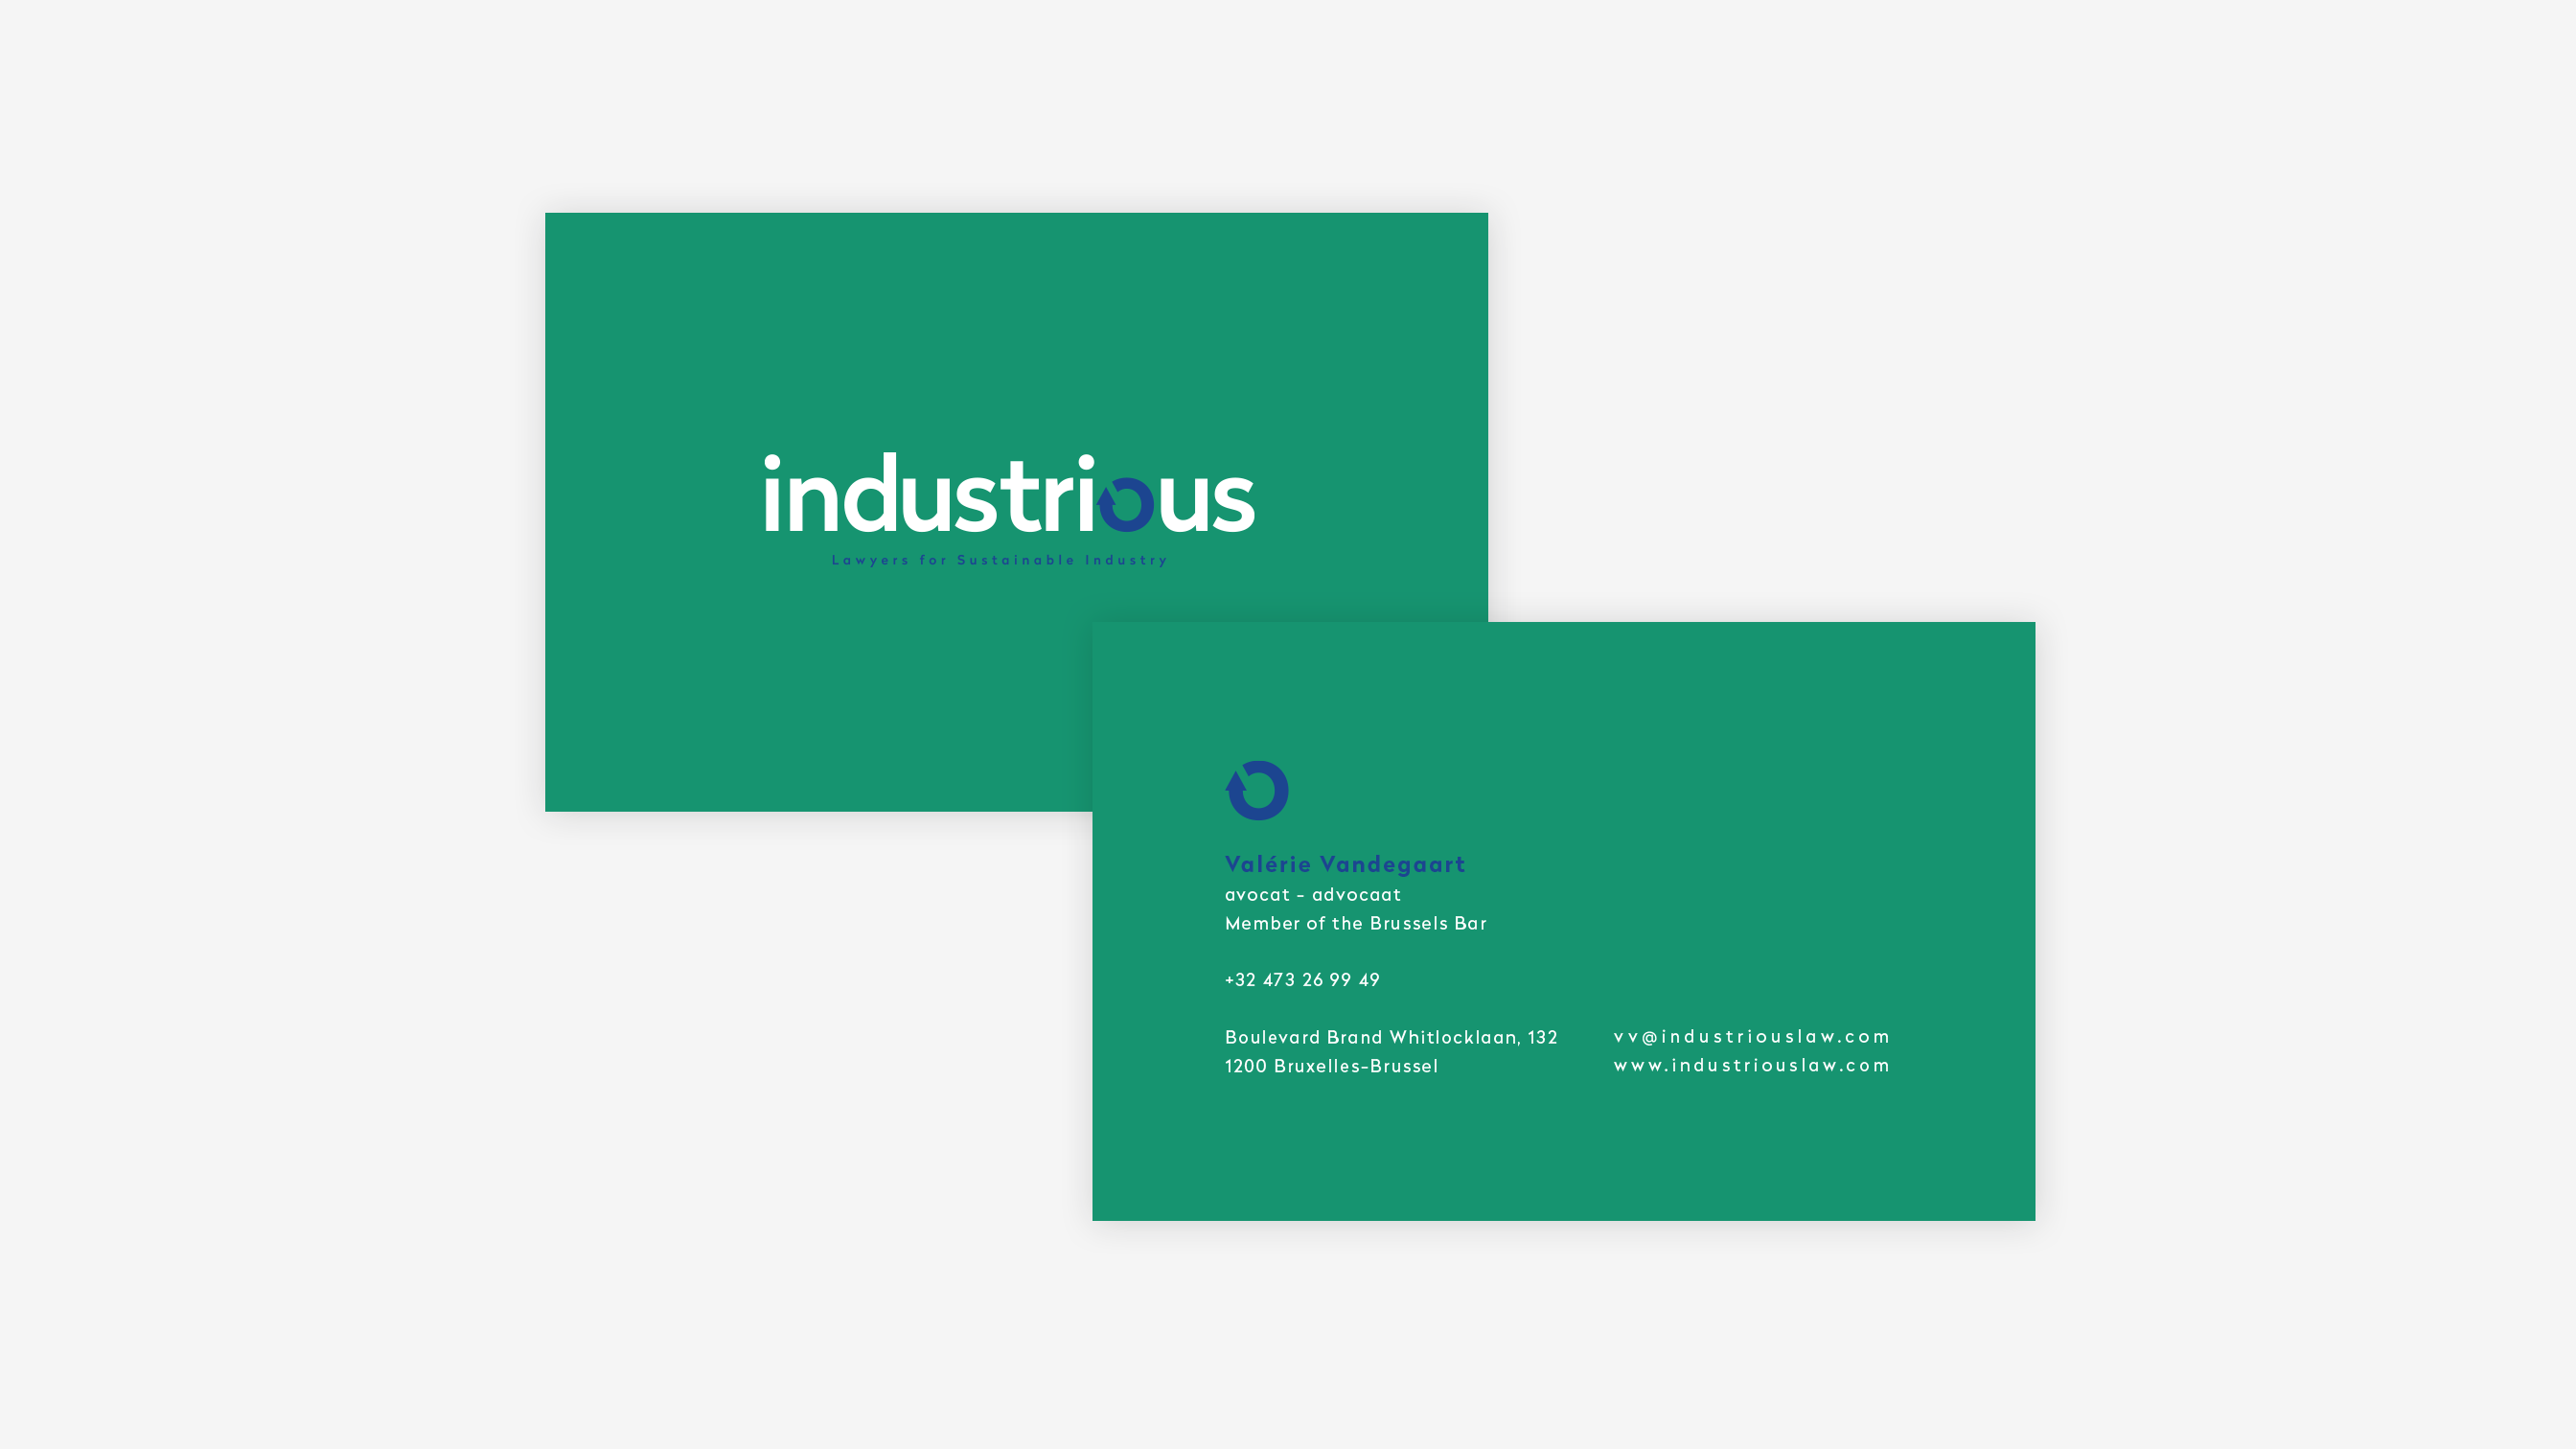 06-industrious-pikteo-logotype